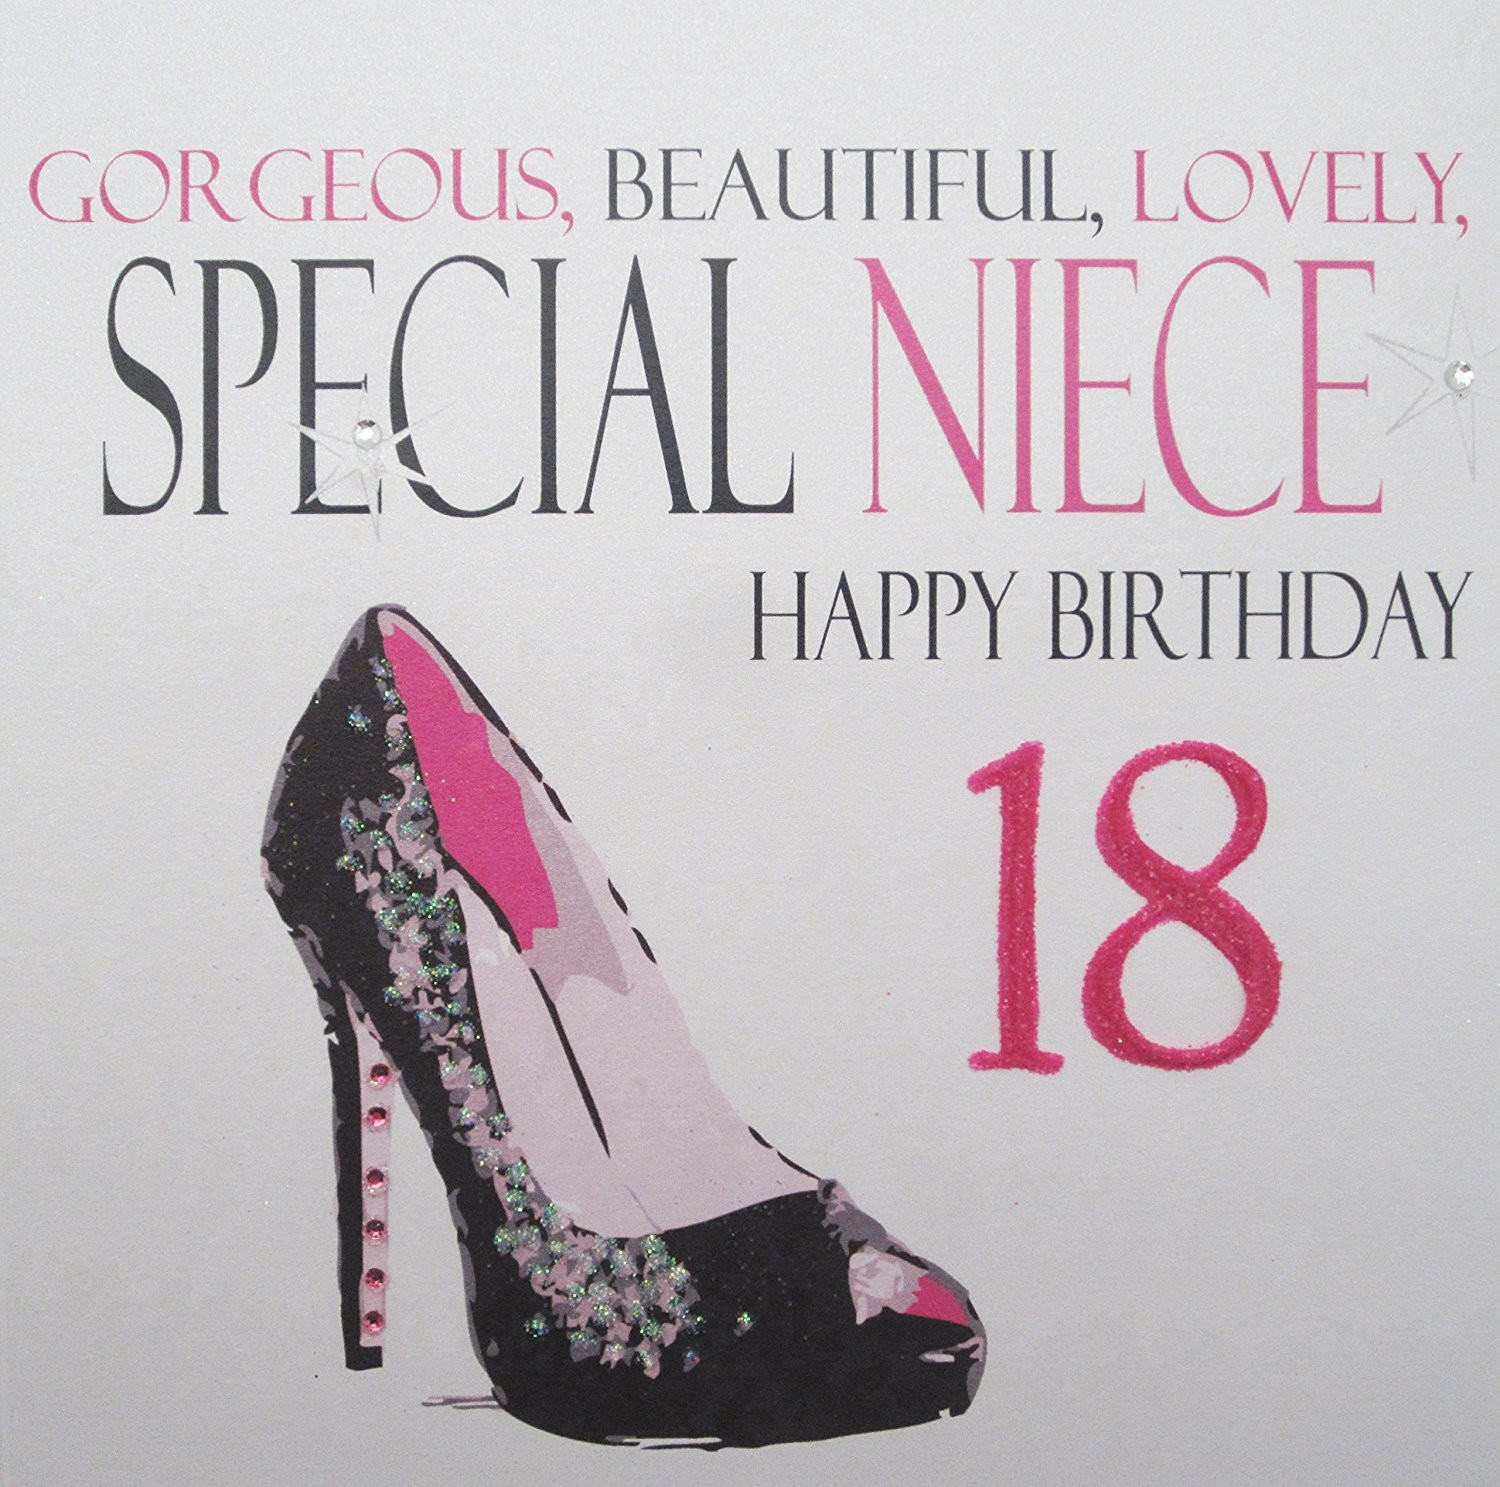 18th birthday card messages niece ; 18th-birthday-cards-lovely-happy-birthday-niece-quotes-awesome-niece-18th-birthday-cards-of-18th-birthday-cards